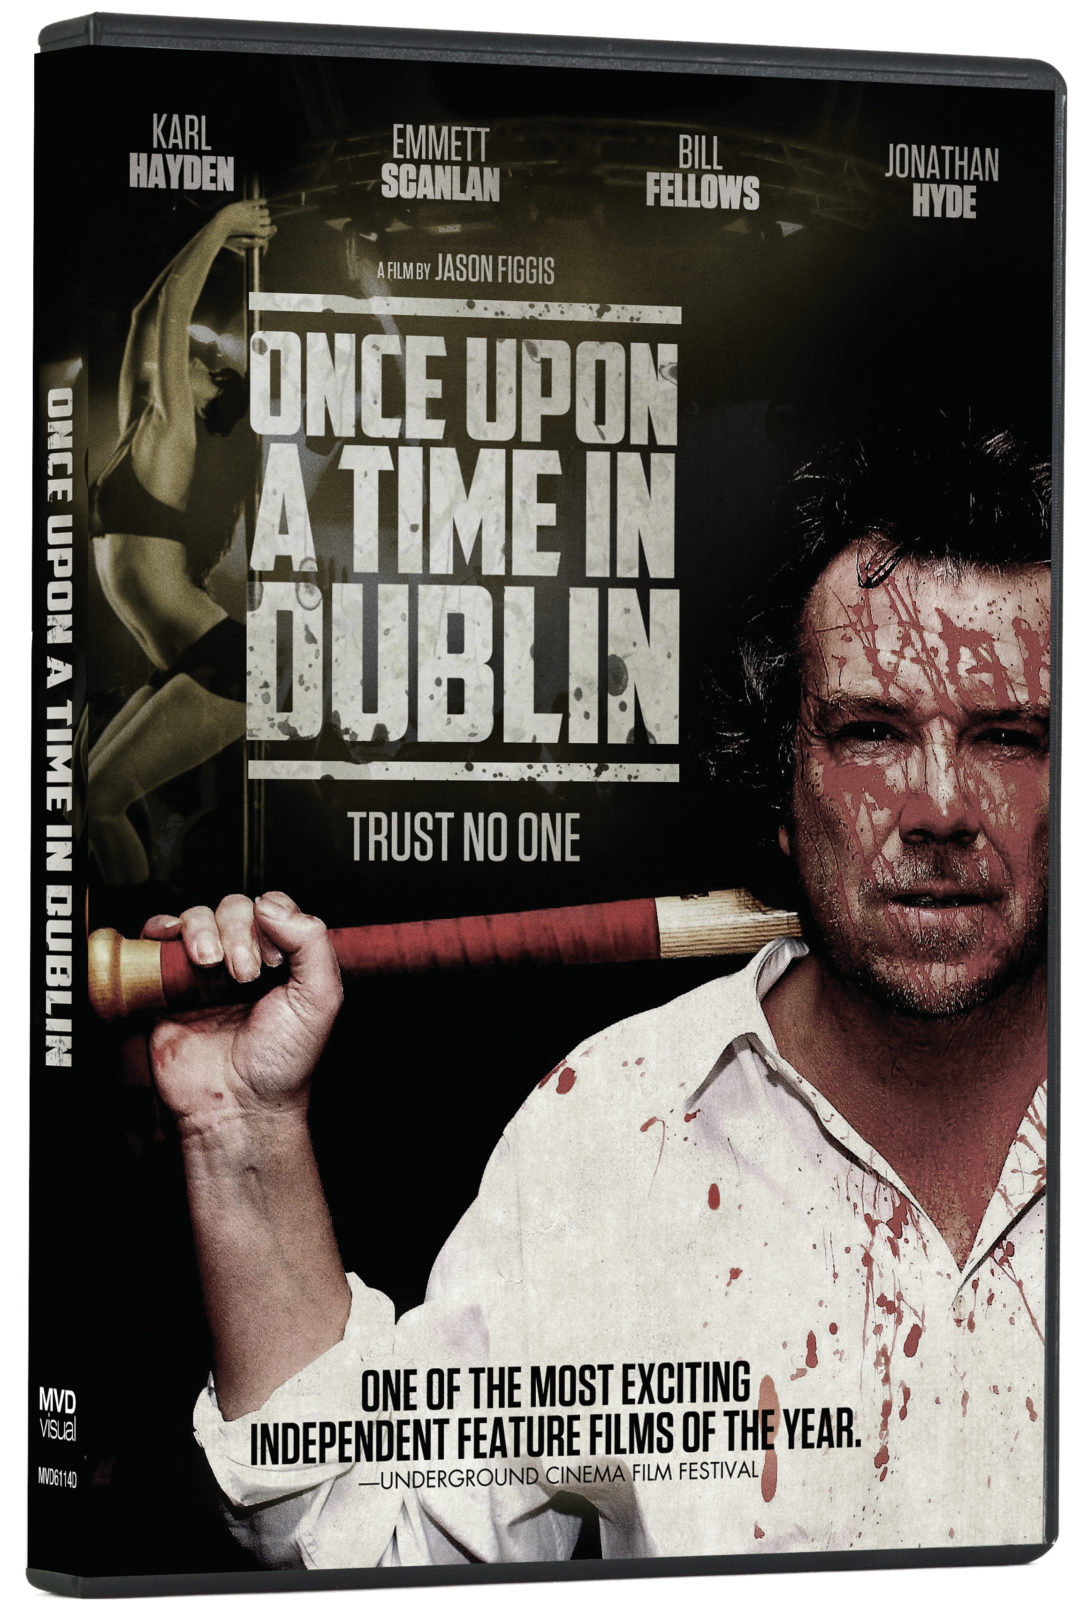 Once Upon a Time in Dublin DVD